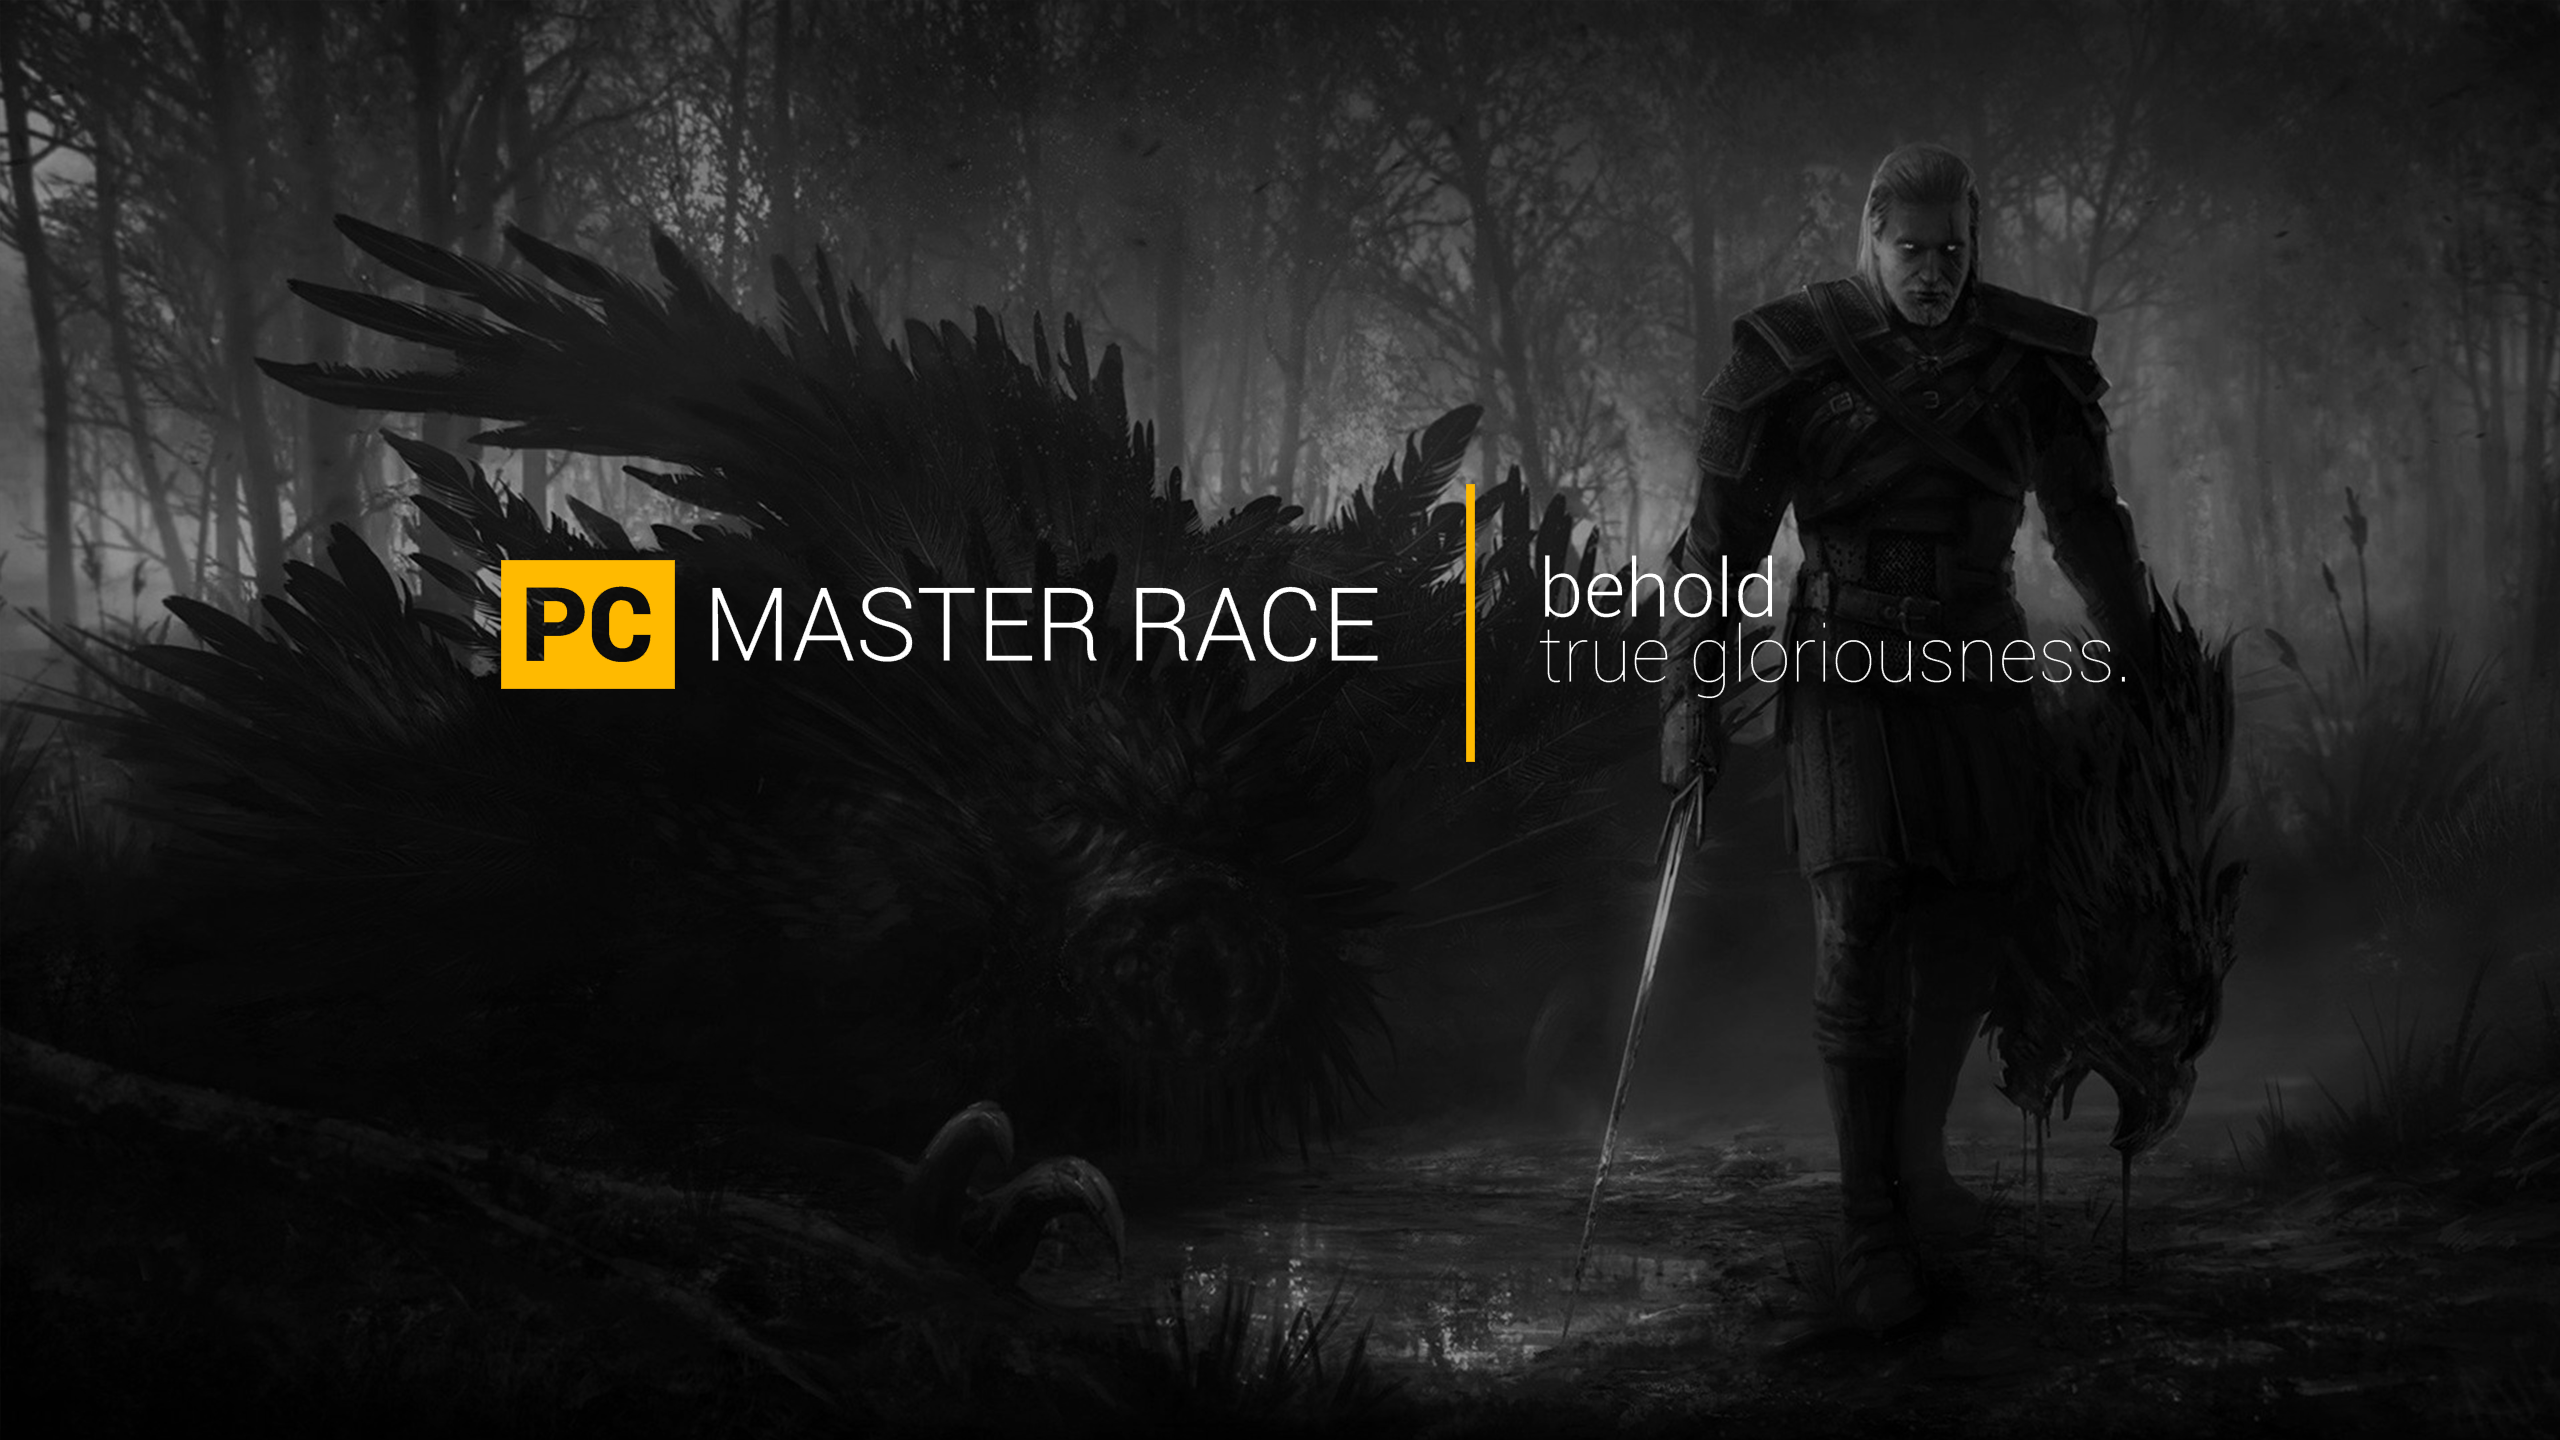 Pc Master Race Wallpaper 1440p Posted By Ethan Peltier